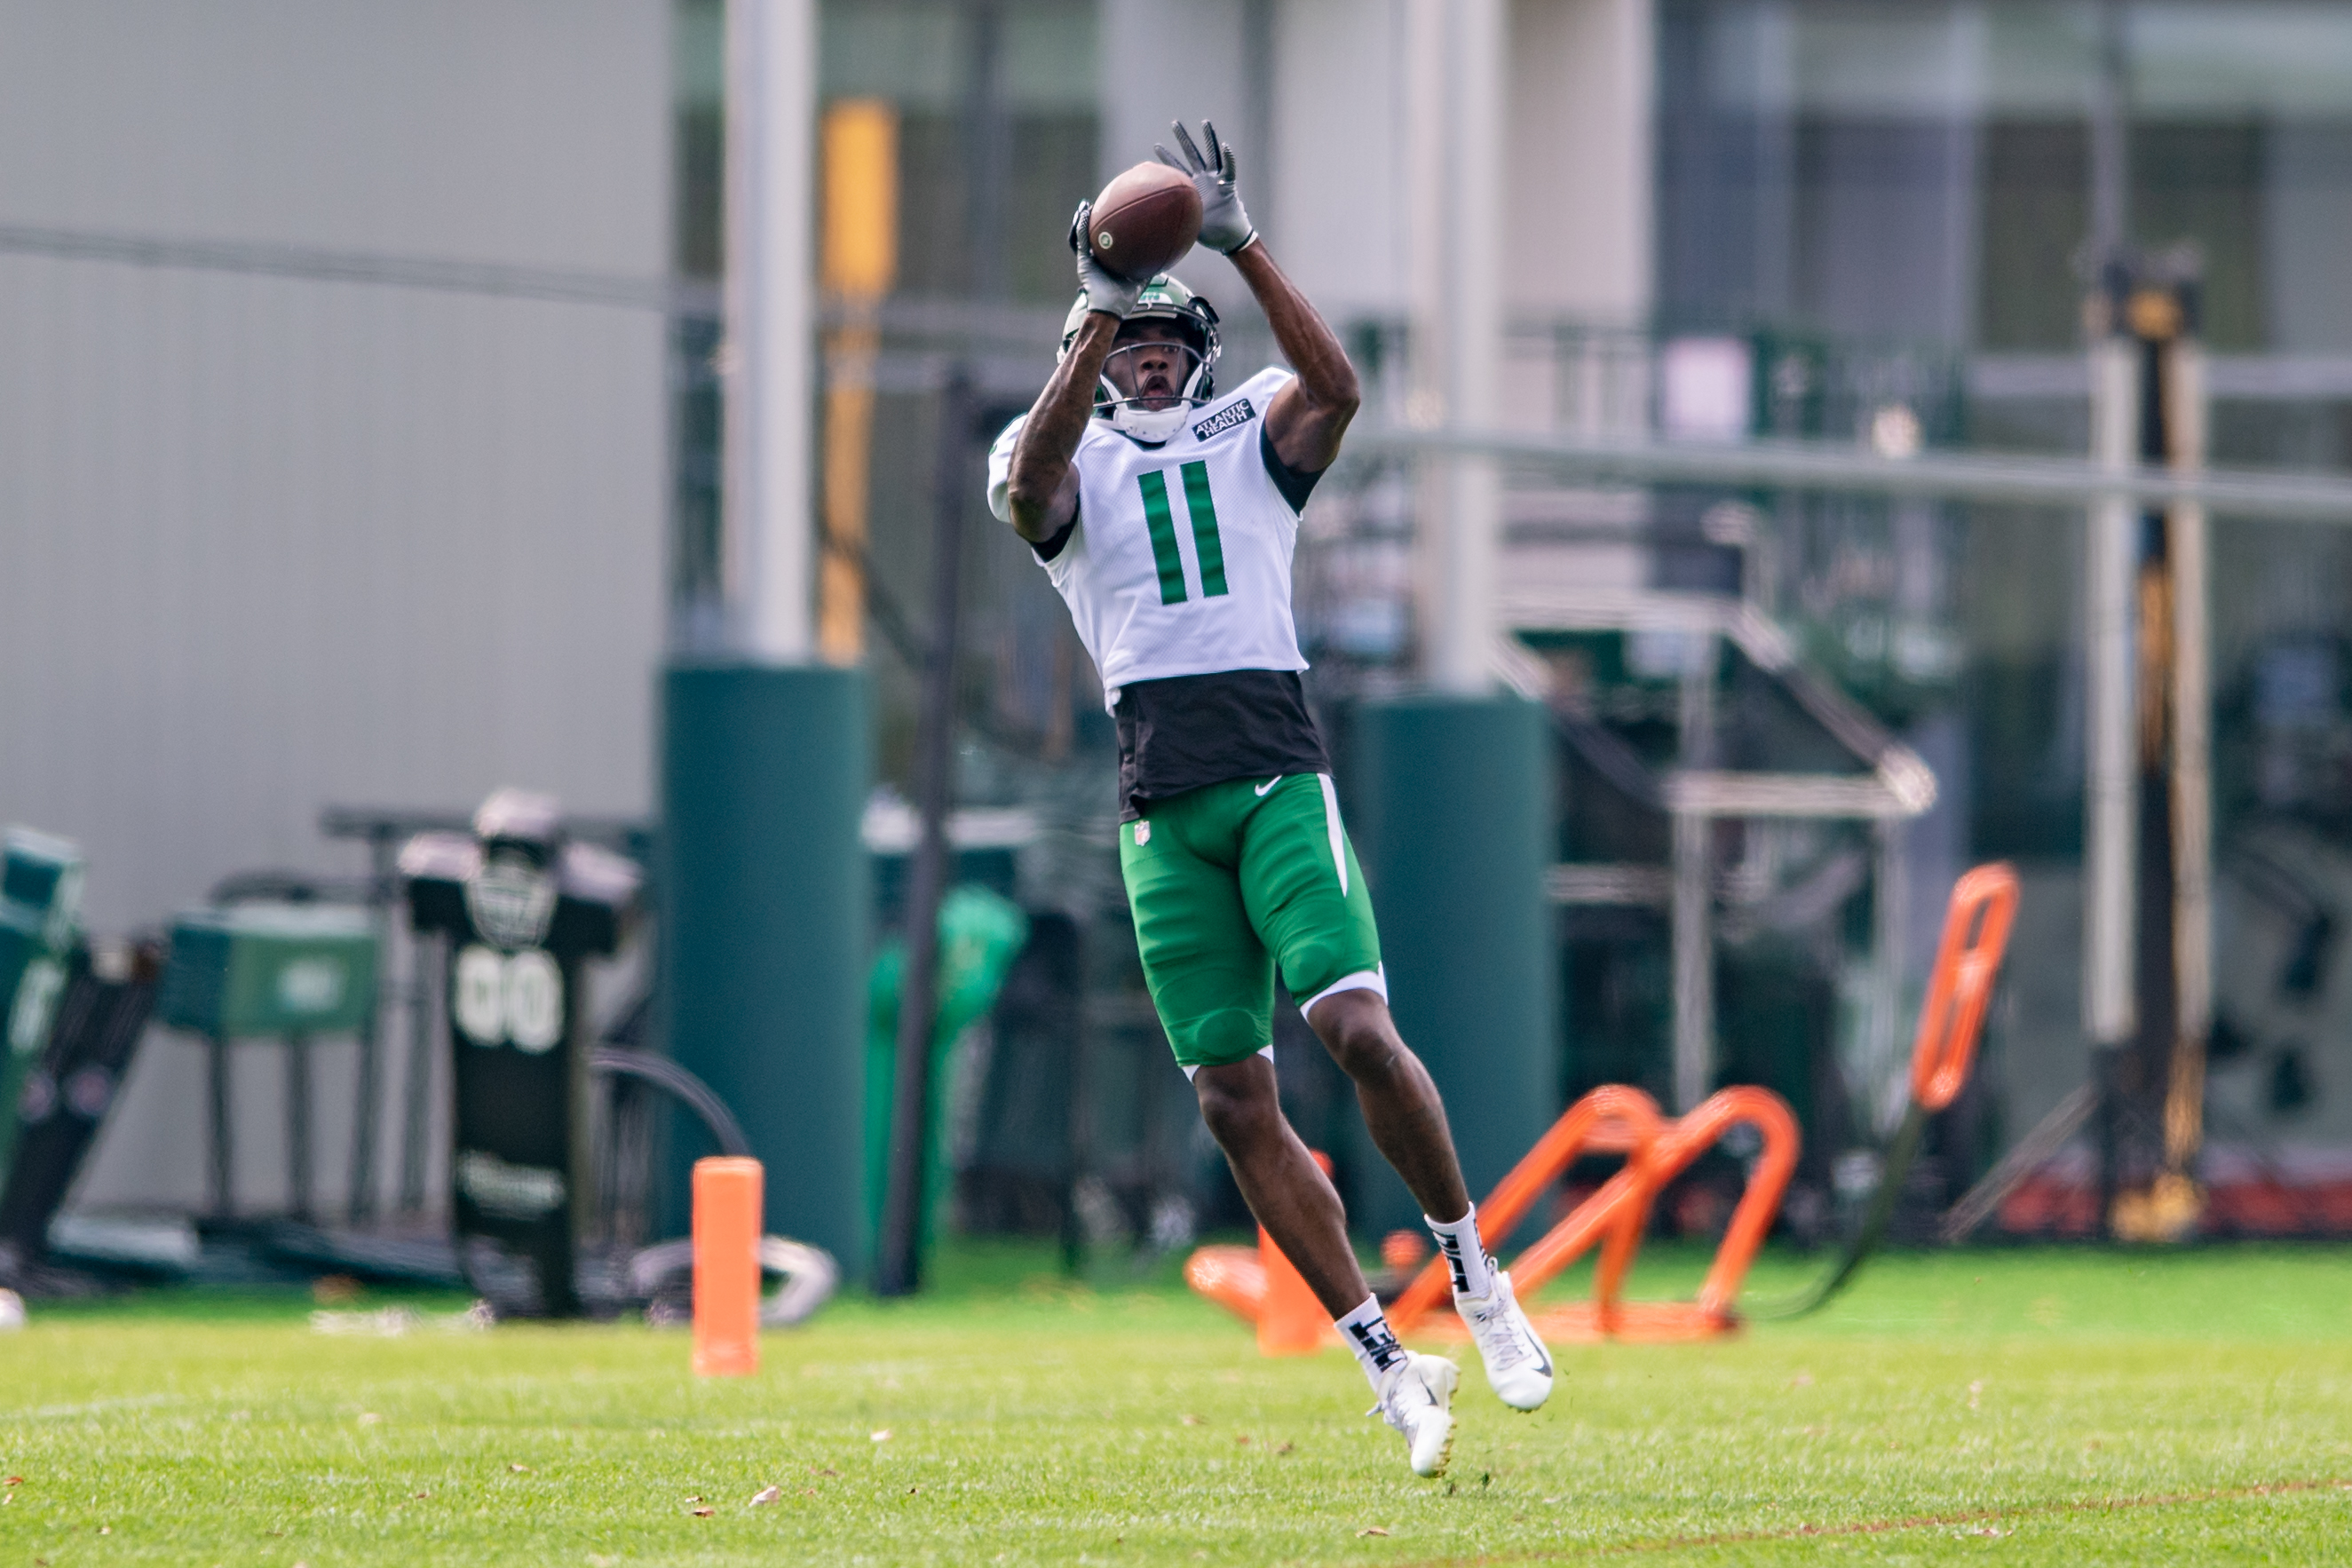 New York Jets wide receiver Denzel Mims (11) catches a pass during New York Jets training camp on August 10, 2021 at the Atlantic Health Training Center in Florham Park, NJ